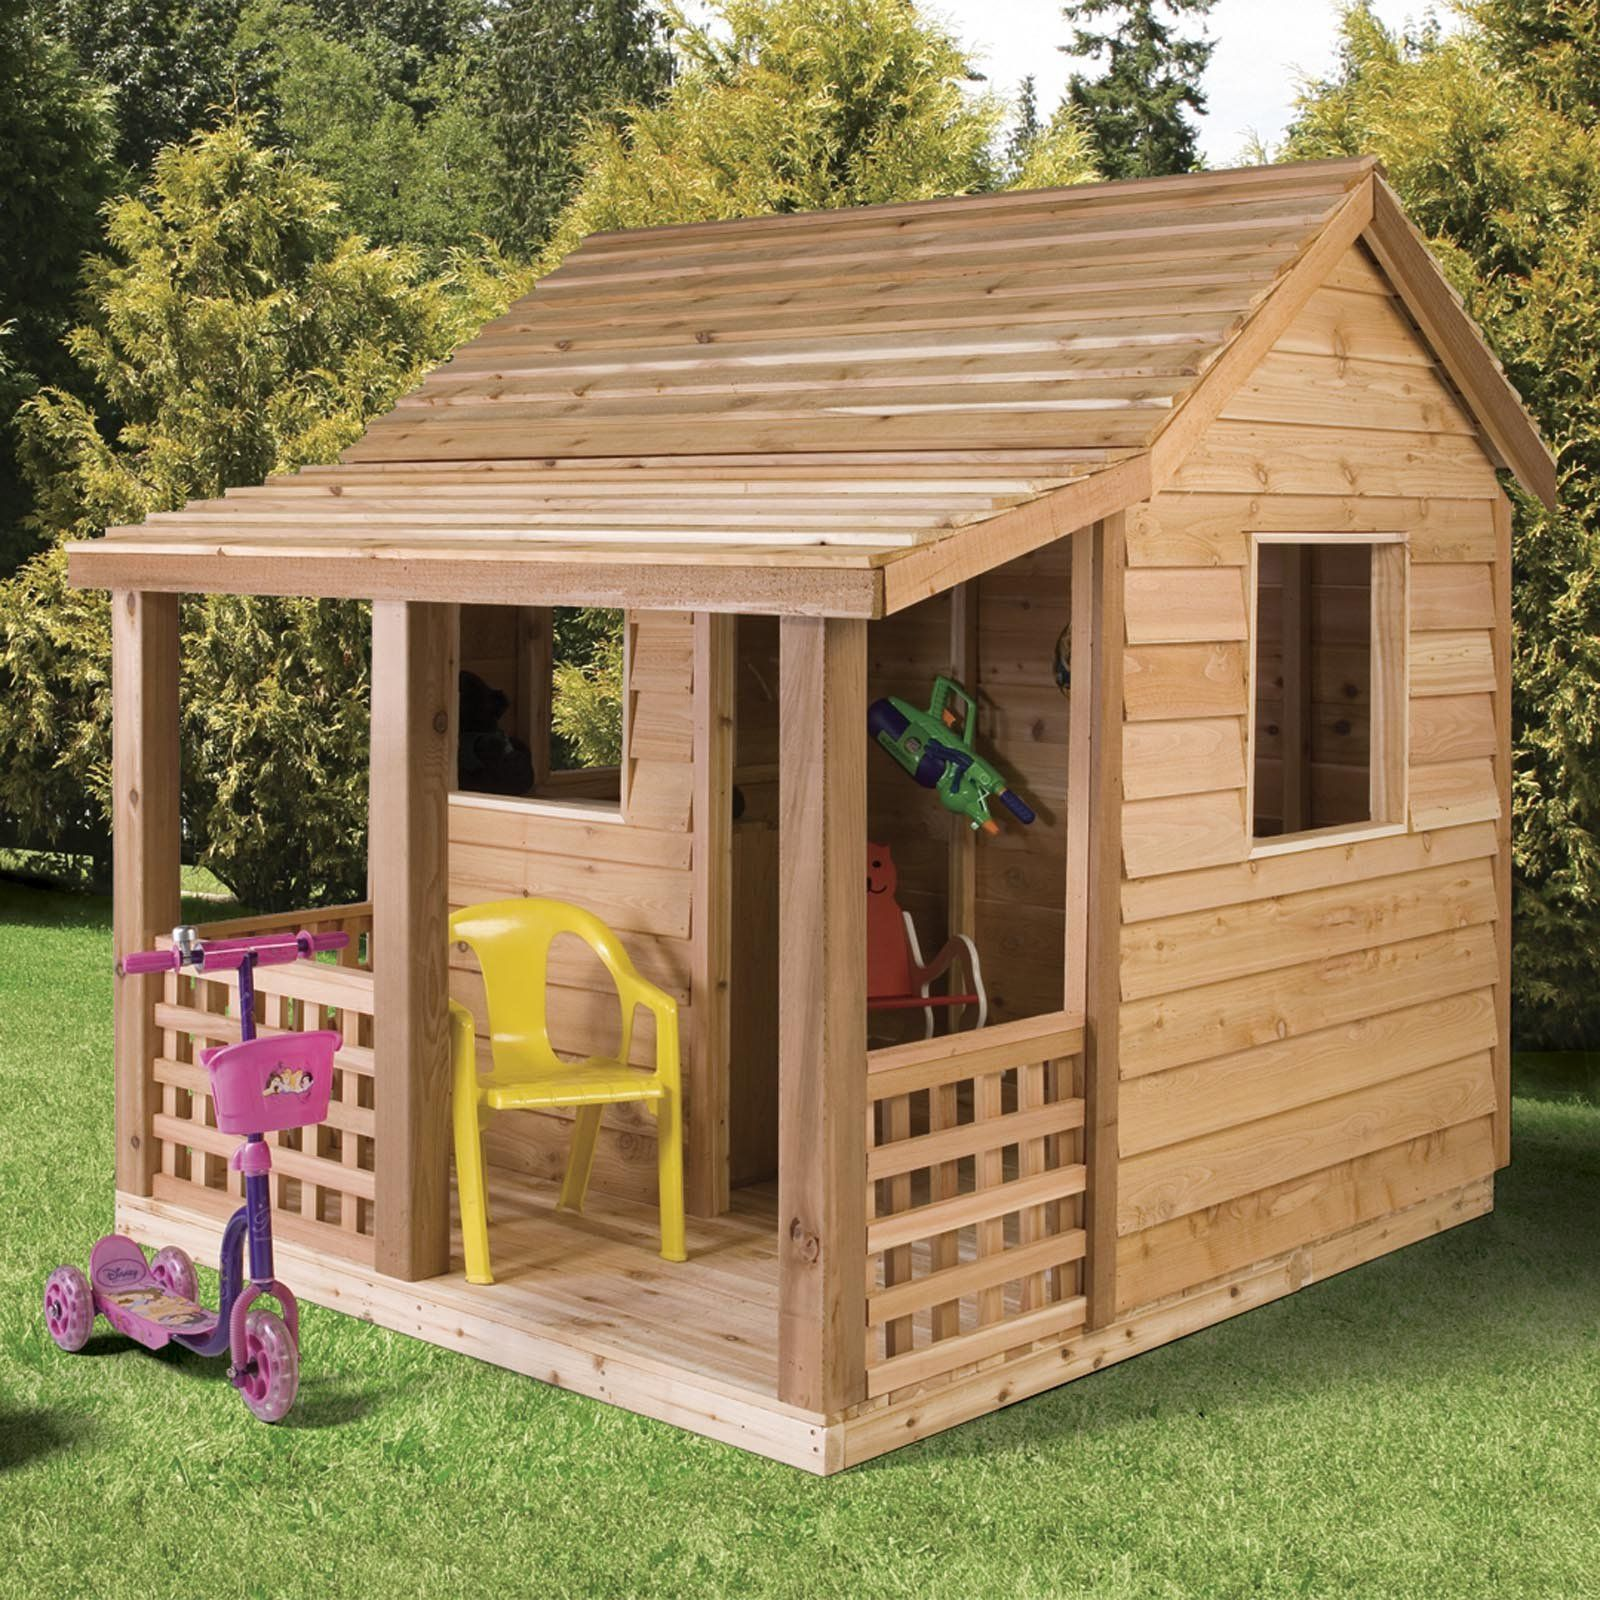 Cedar shed cabin cedar playhouse with classic slat style for How to make a playhouse out of wood